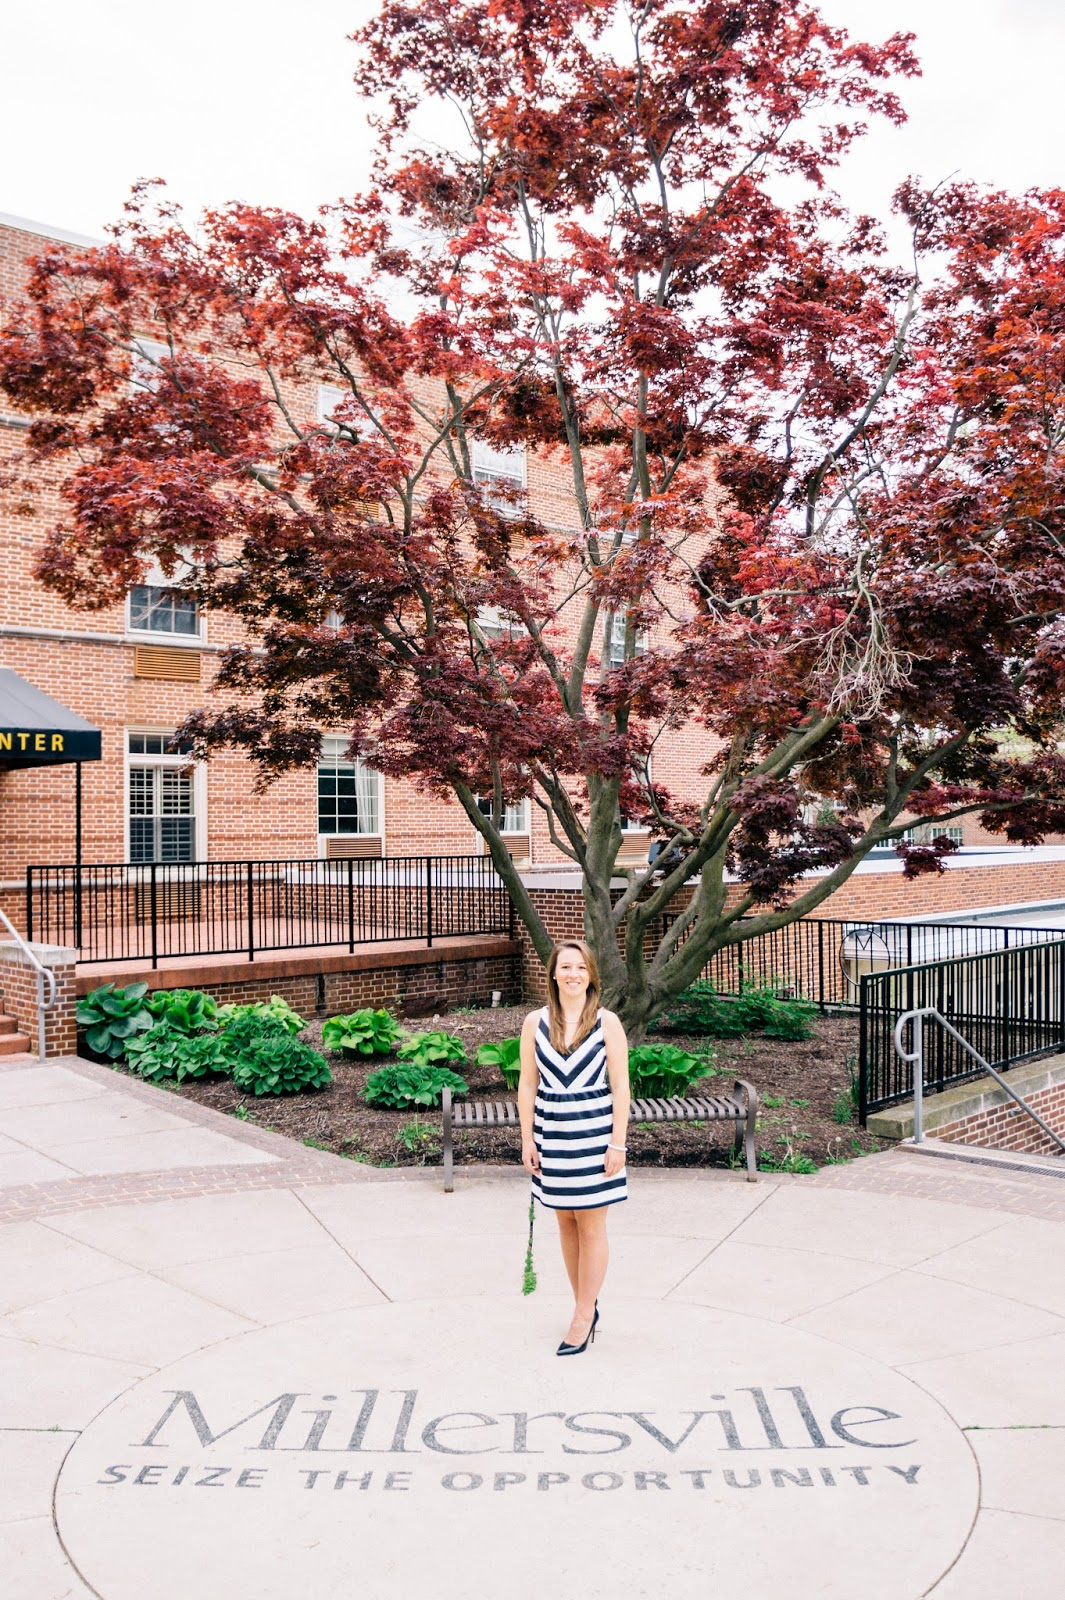 Girl in front of a red tree at Millersville University